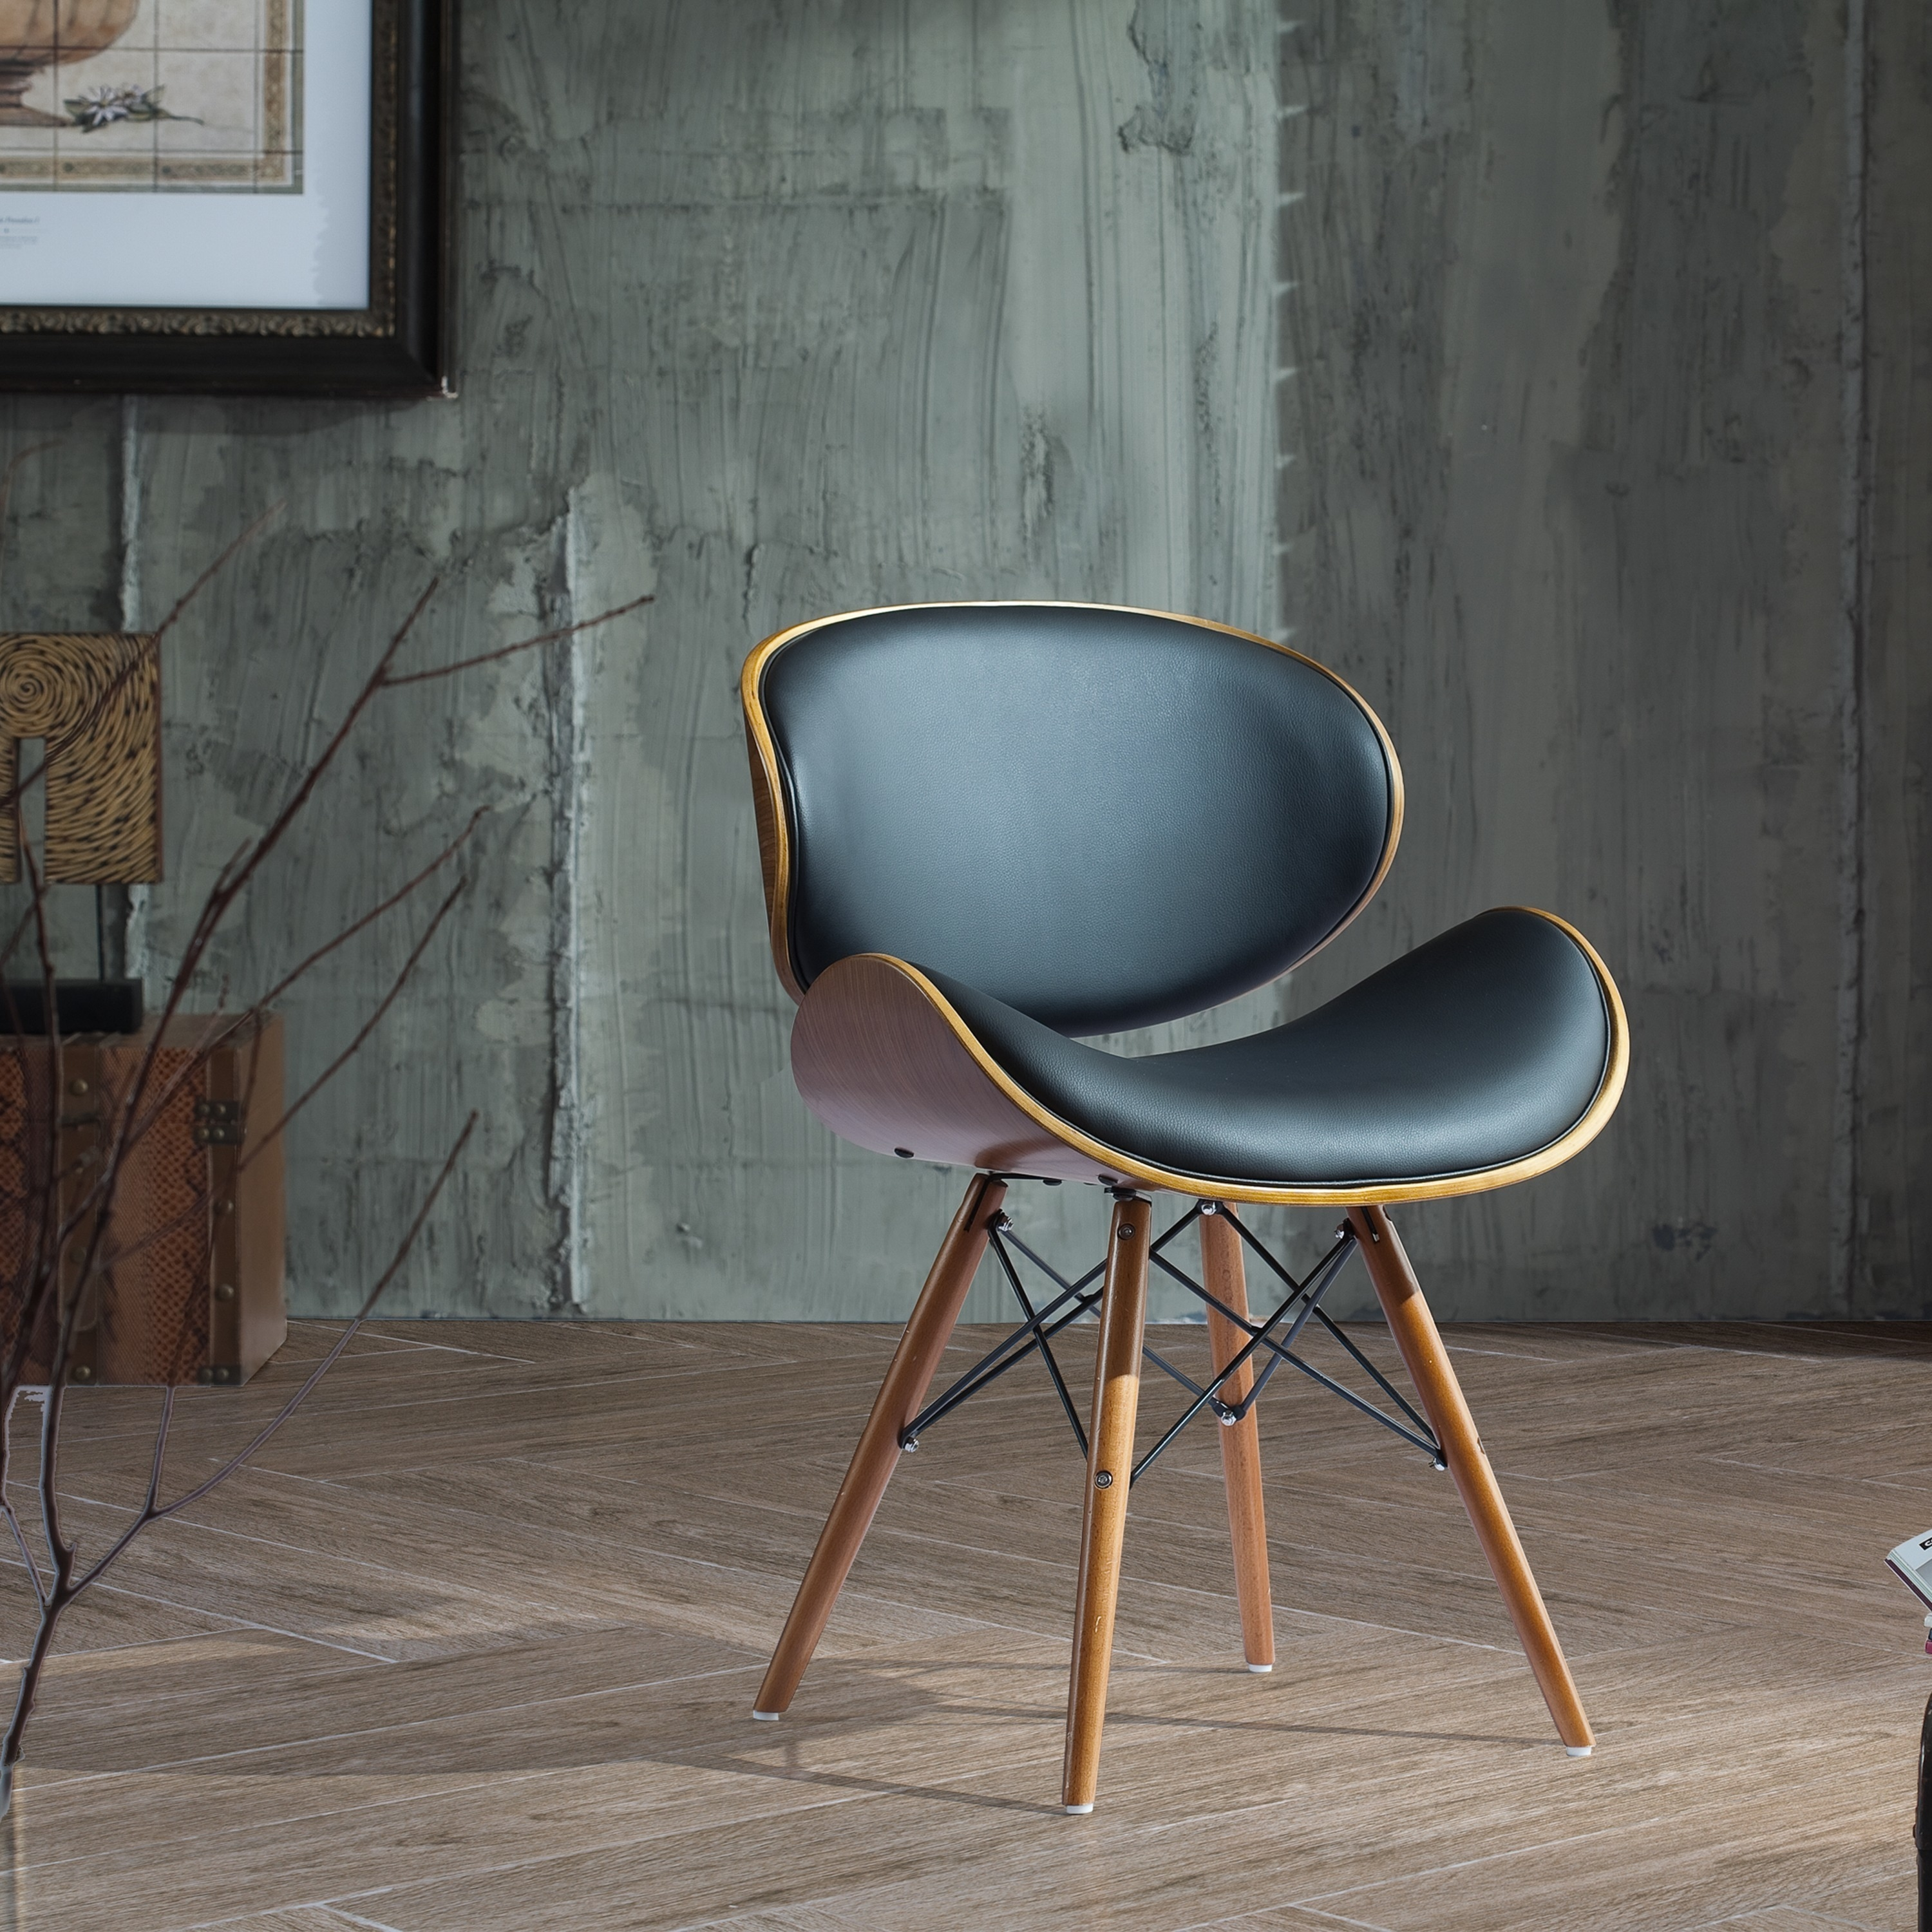 30 Inch Chair with Walnut and Black Color Finishes (2 options available)